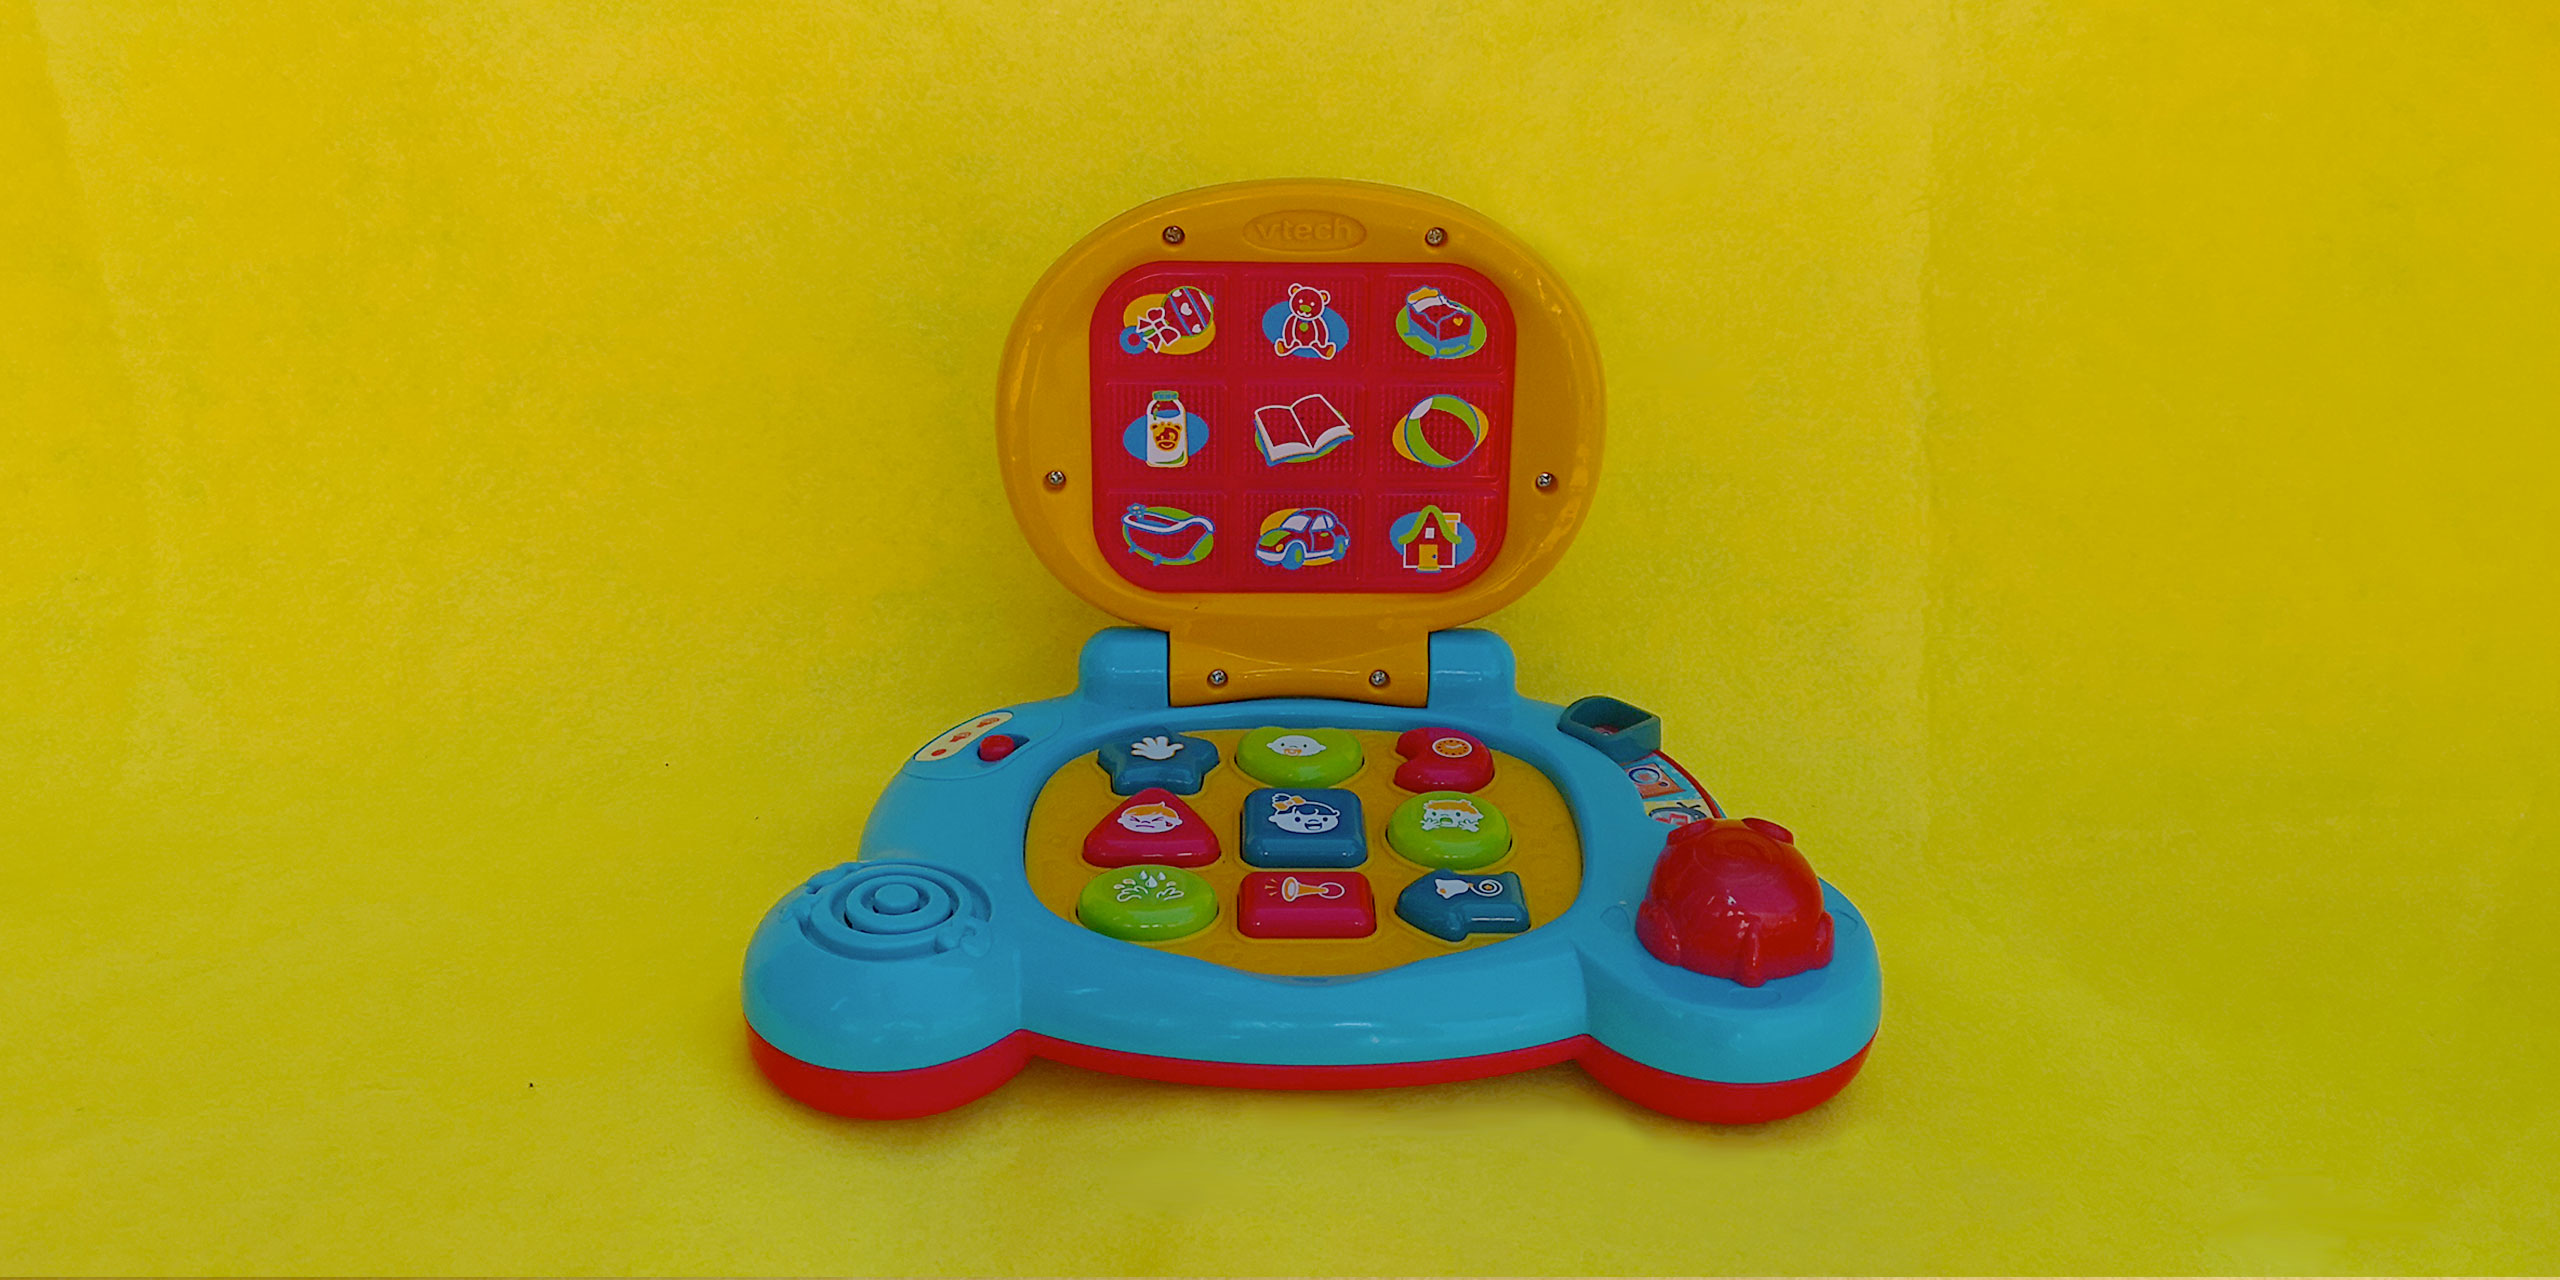 A child's laptop toy with icons on the screen